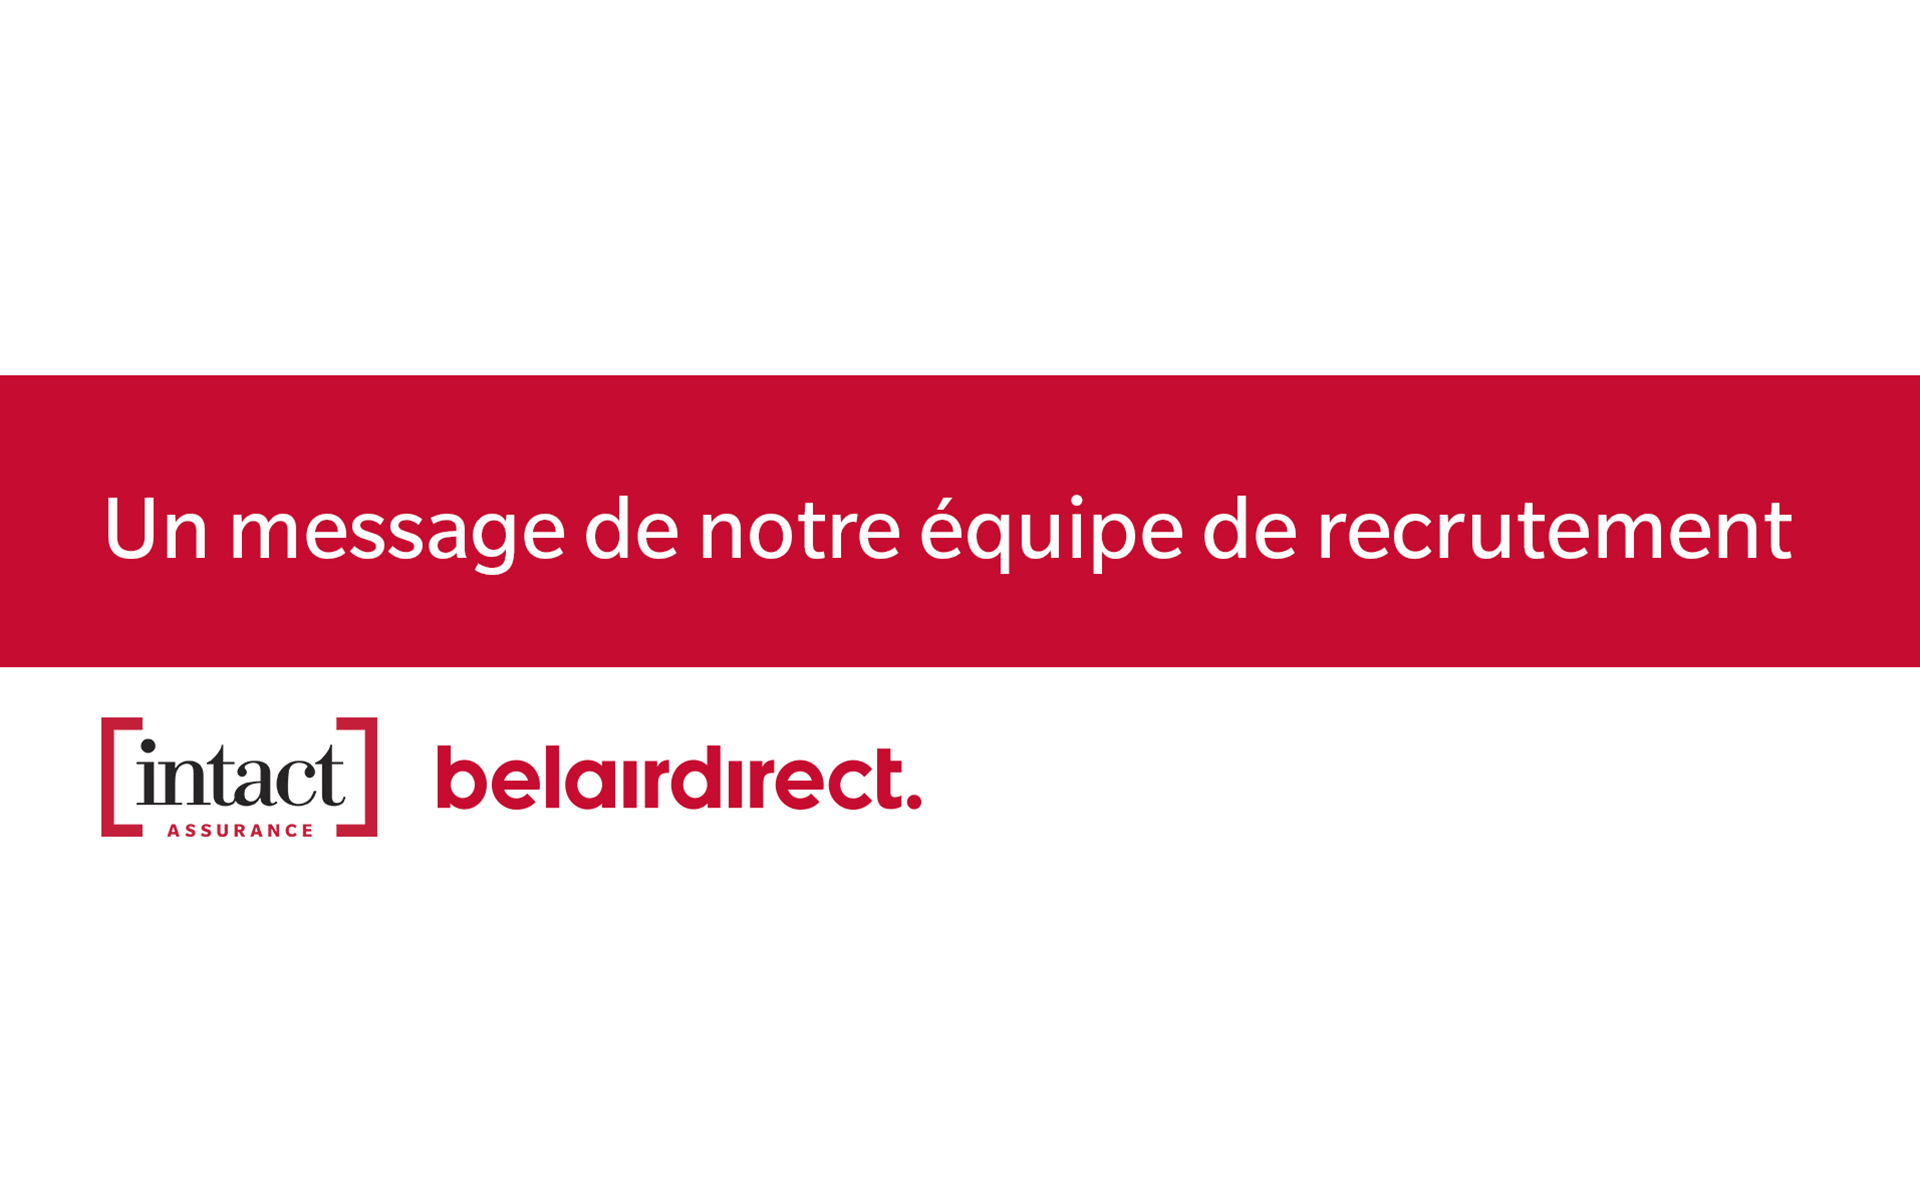 A message from our recruitment team: Fraudulent job postings